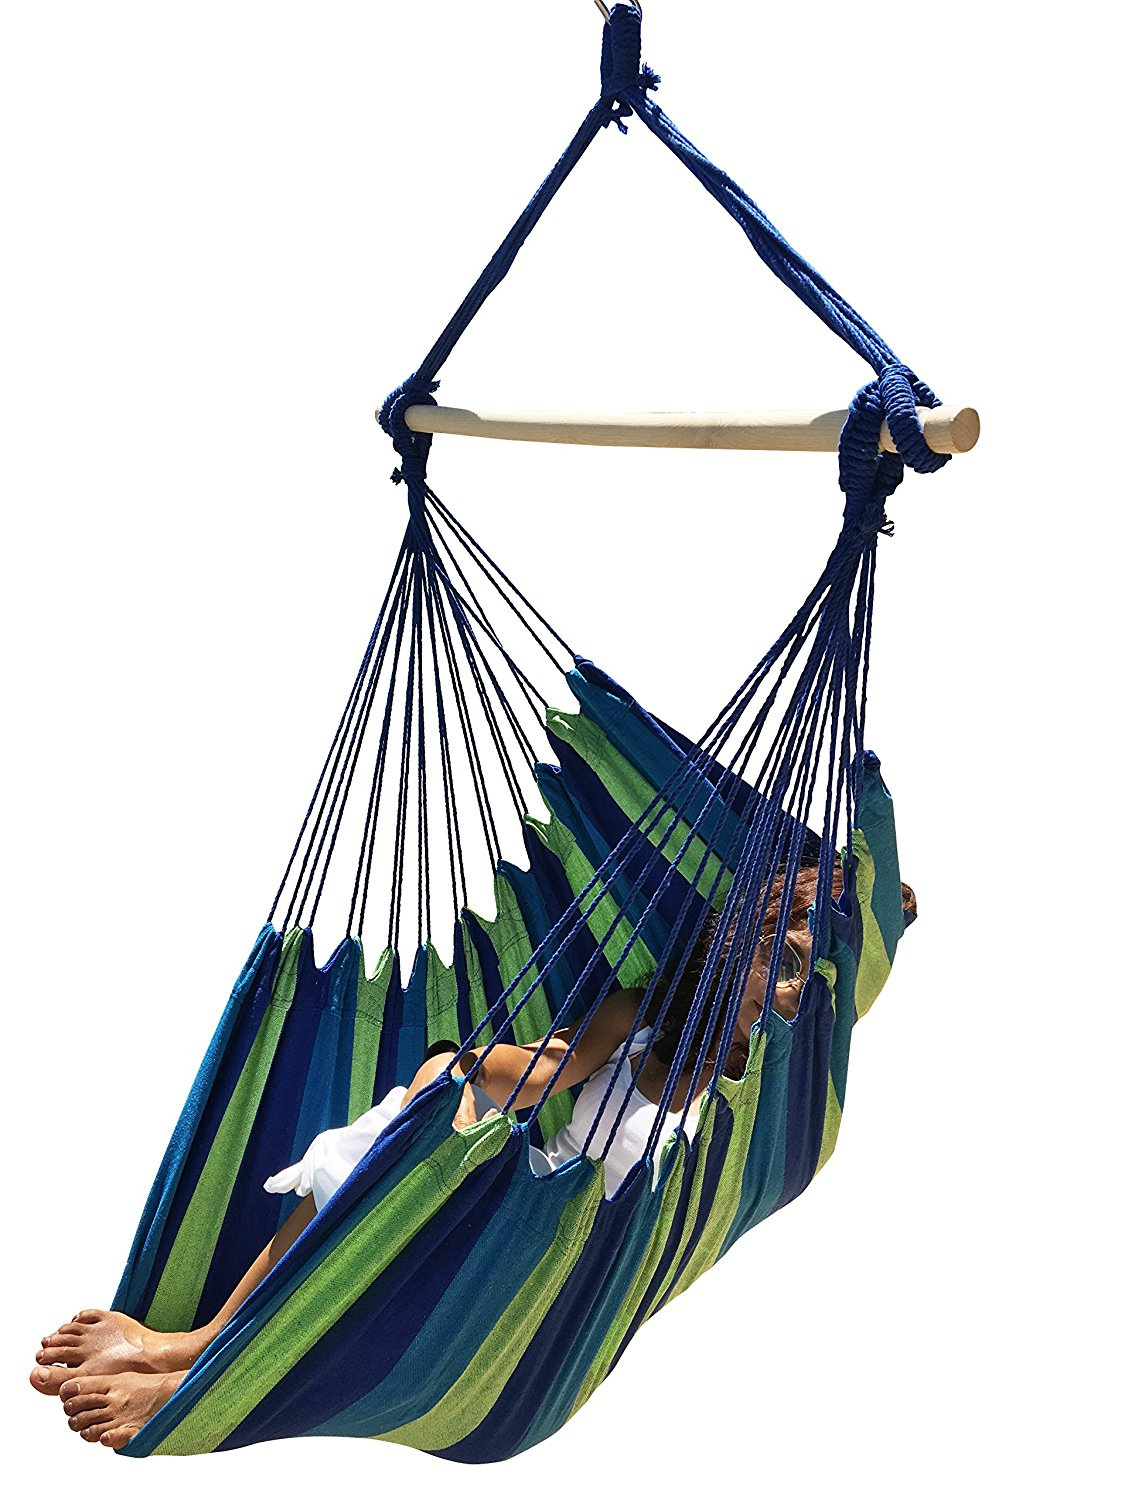 hanging rope chair true seating concepts hammock porch swing seat patio camping